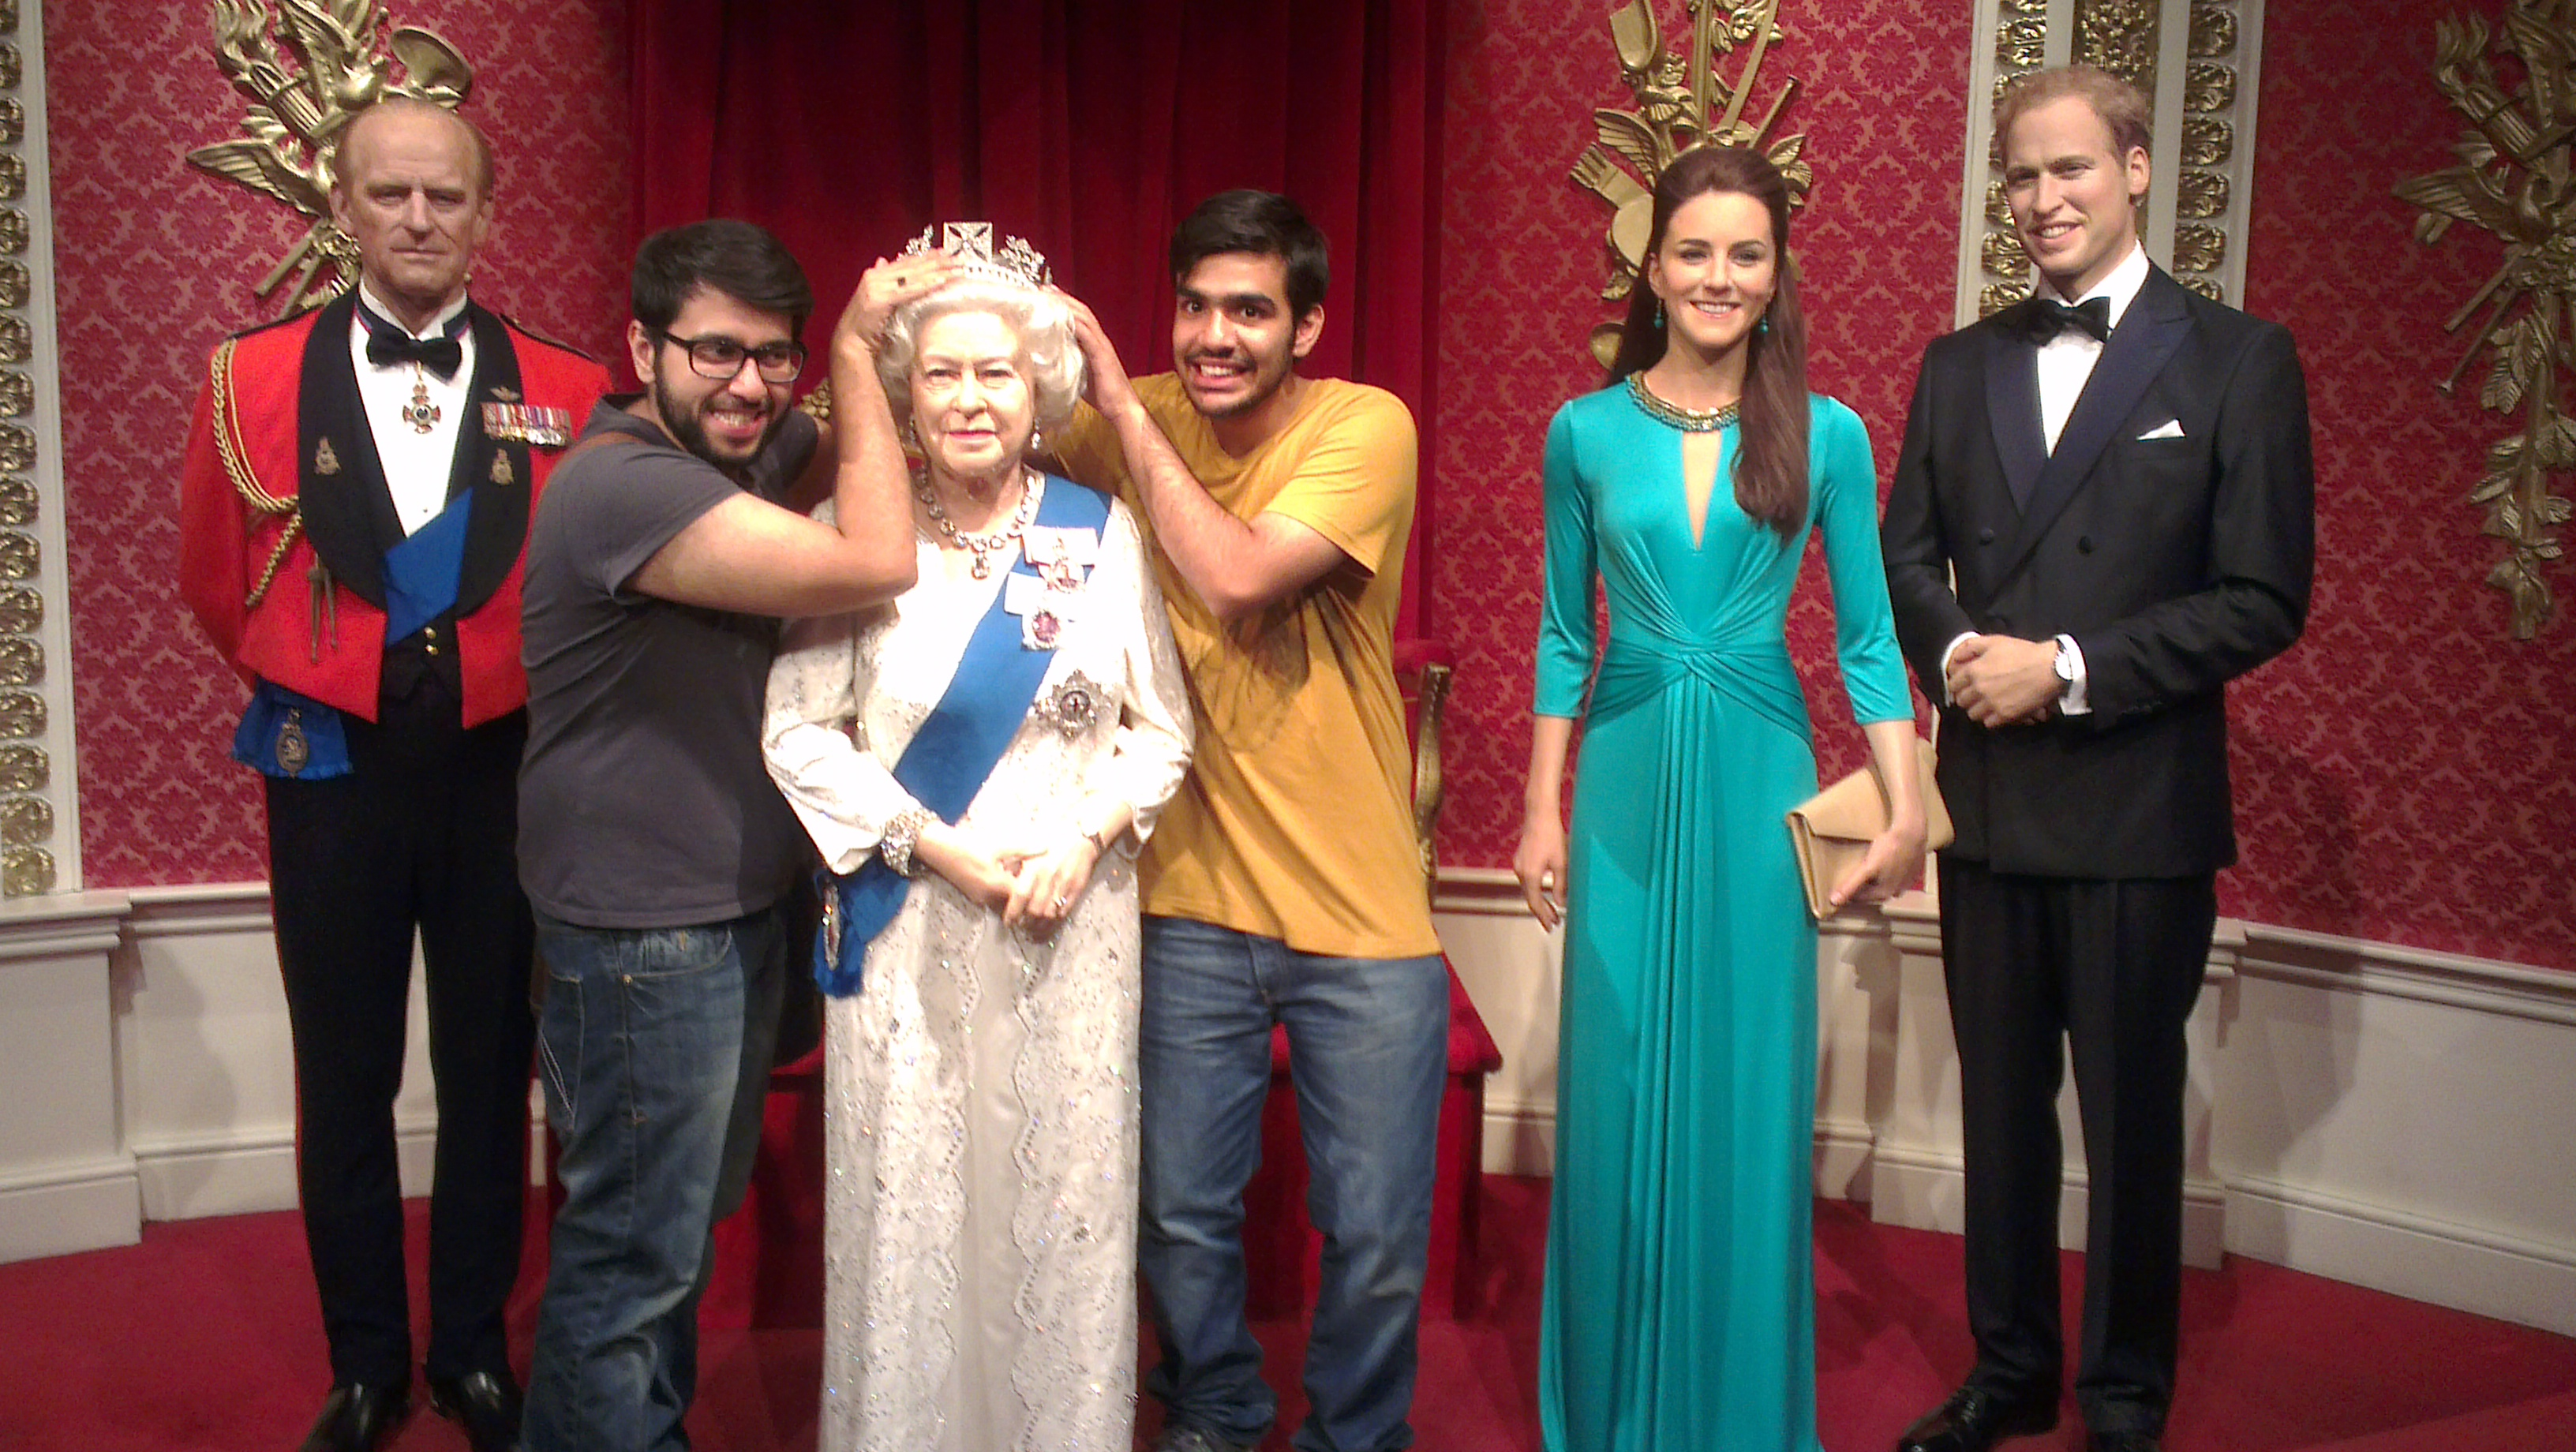 My visit to Madam Tussaud